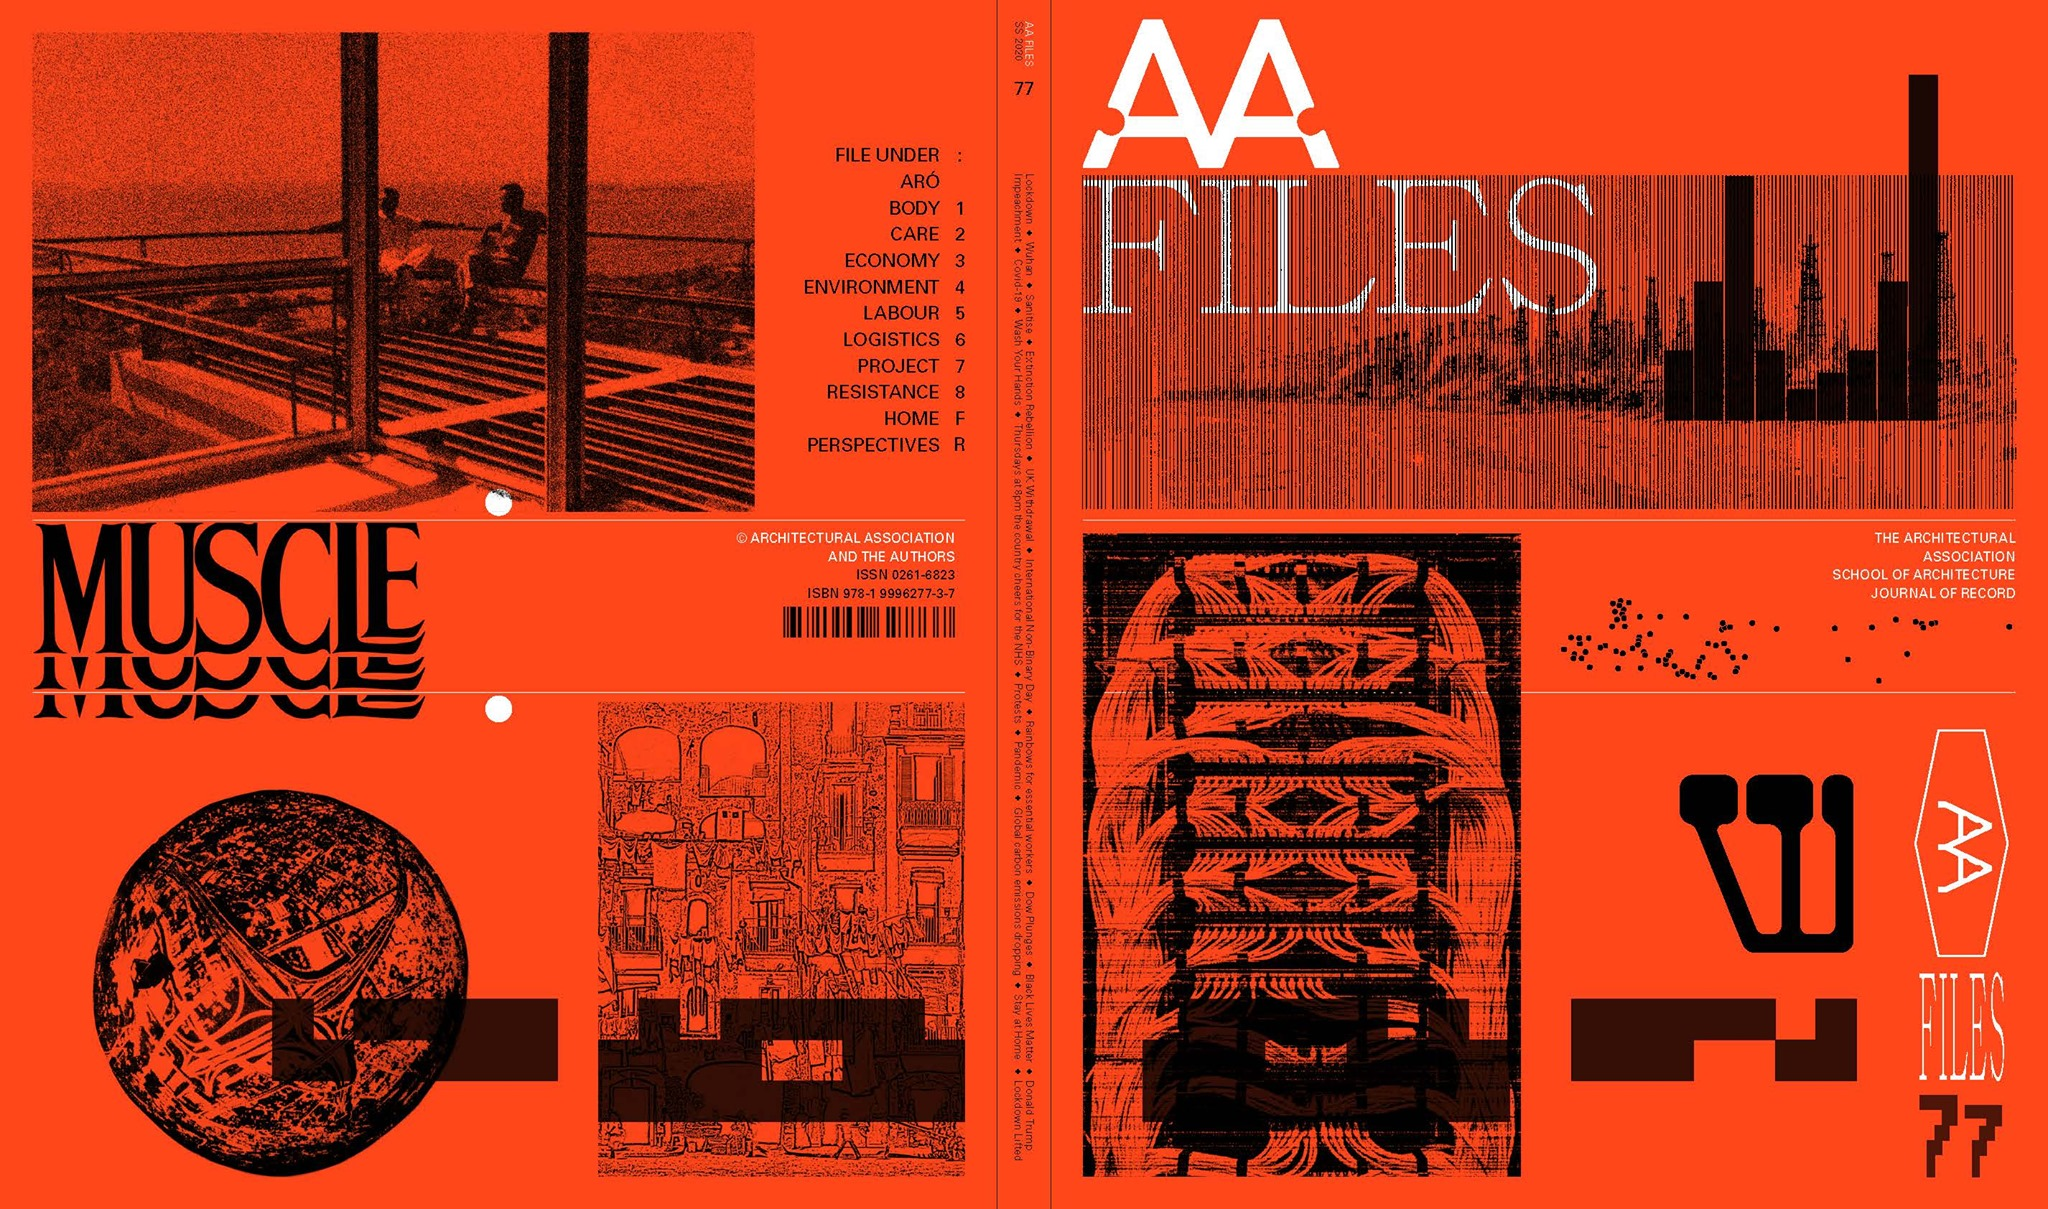 Conference: On Publishing Architecture